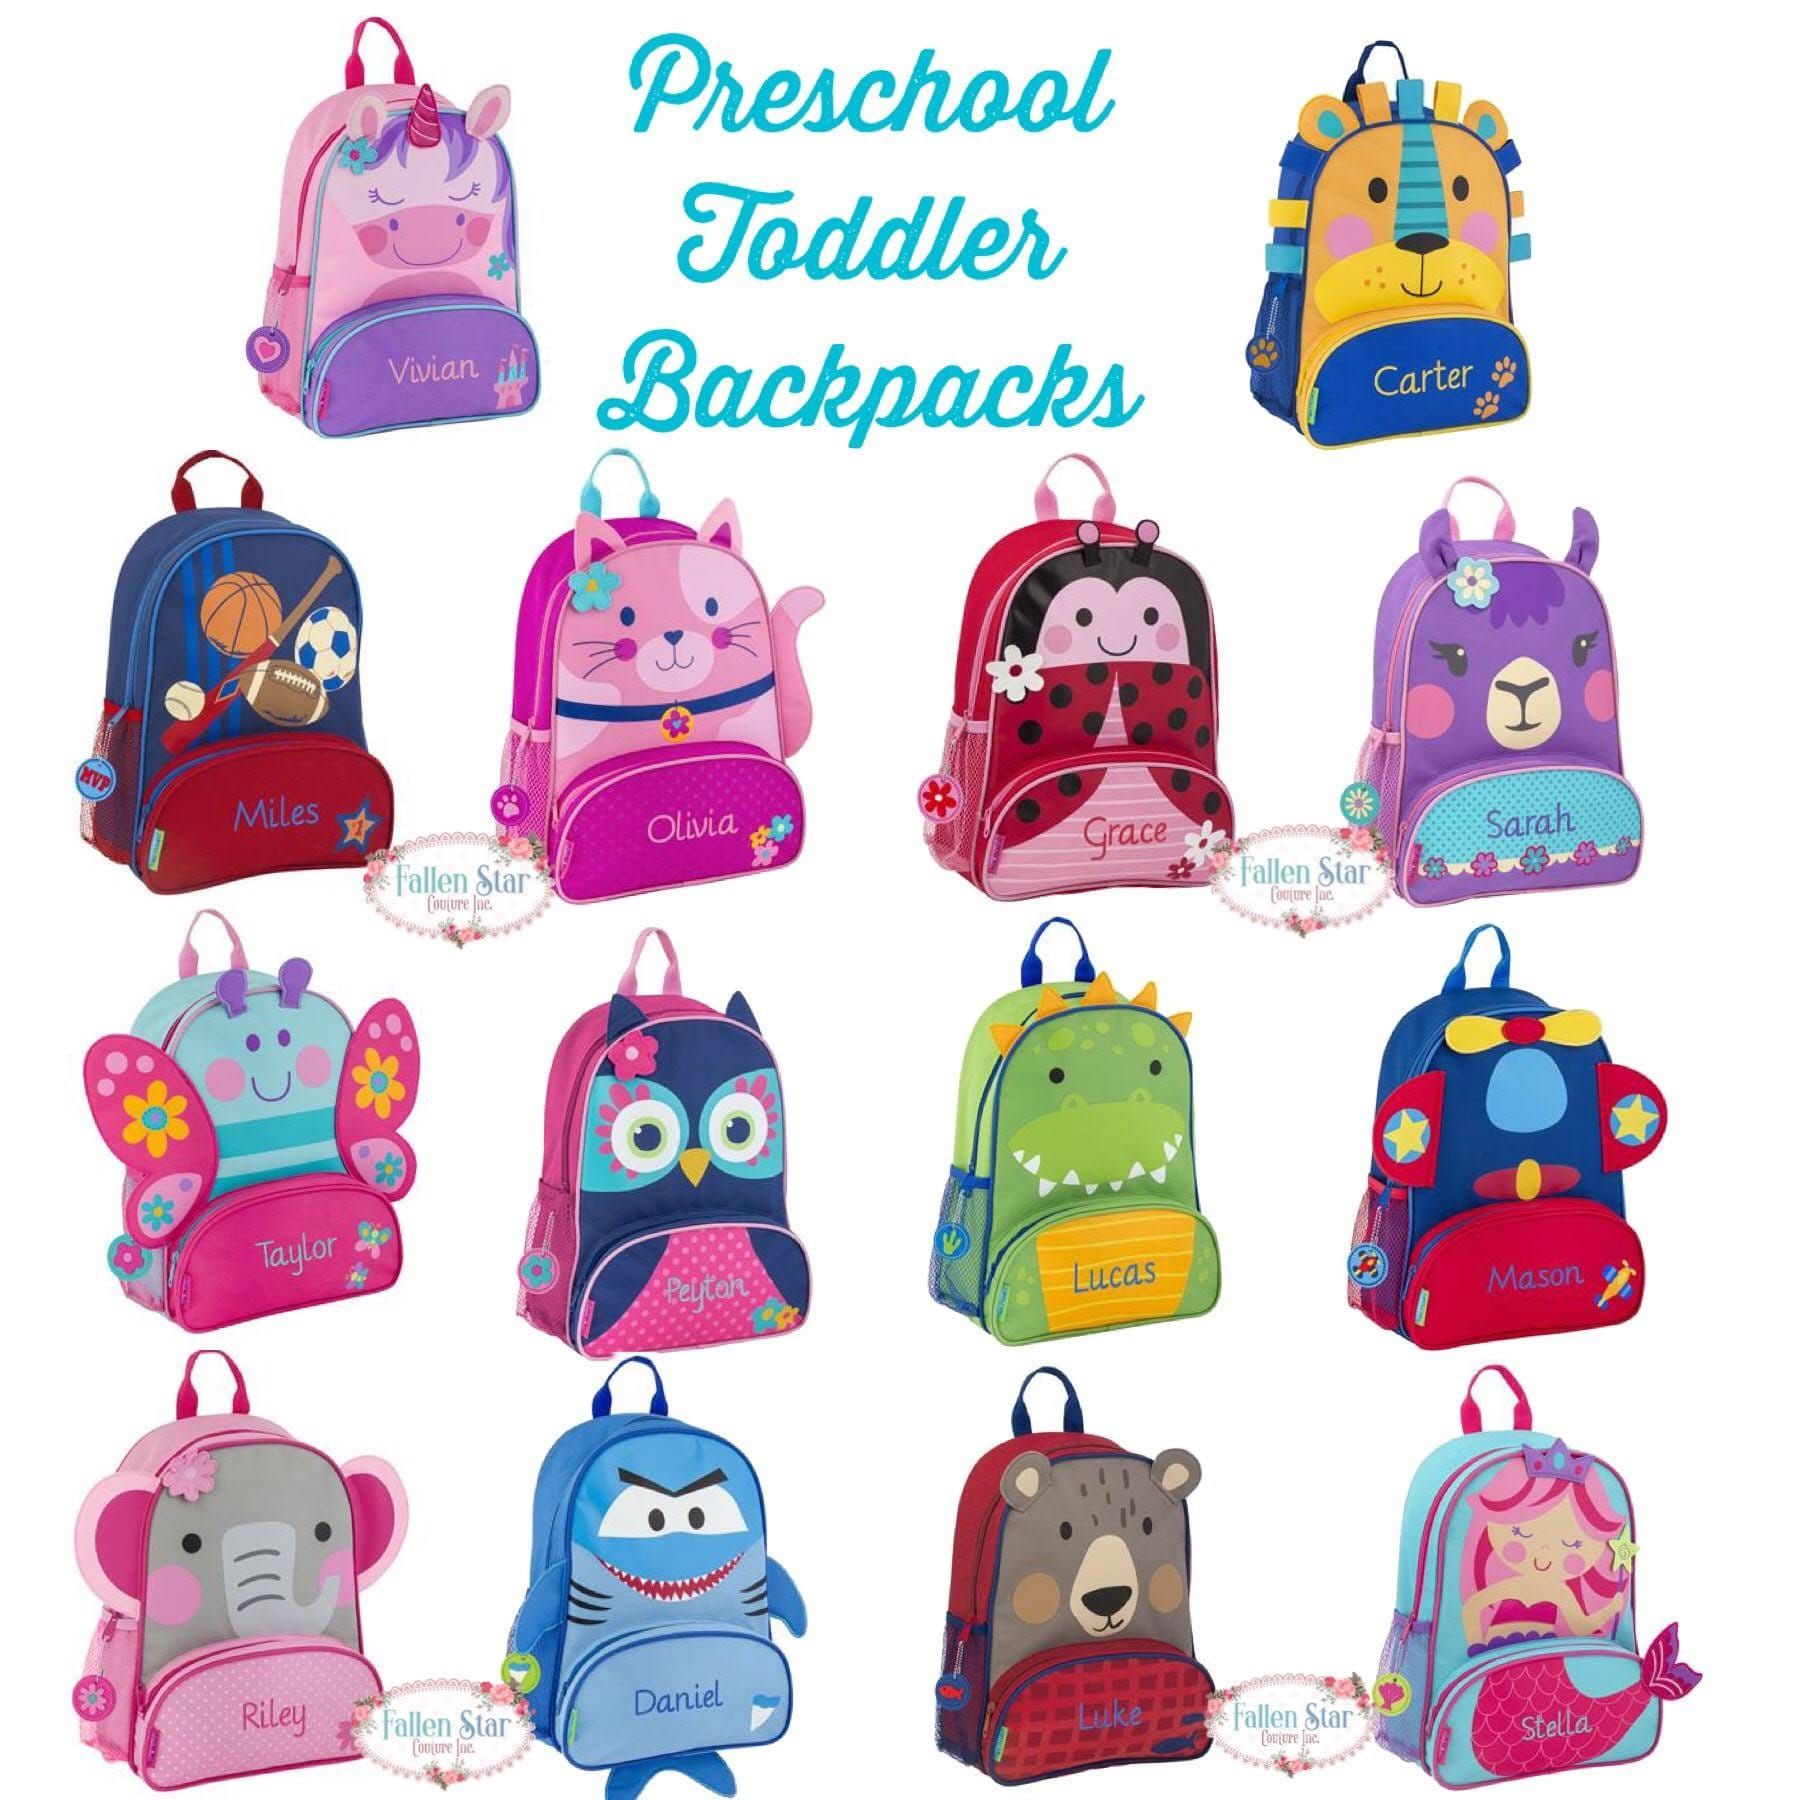 8845f0d36bdc Preschool backpack   toddler backpack   stephen joseph backpack    personalized backpack   SIDEKICK